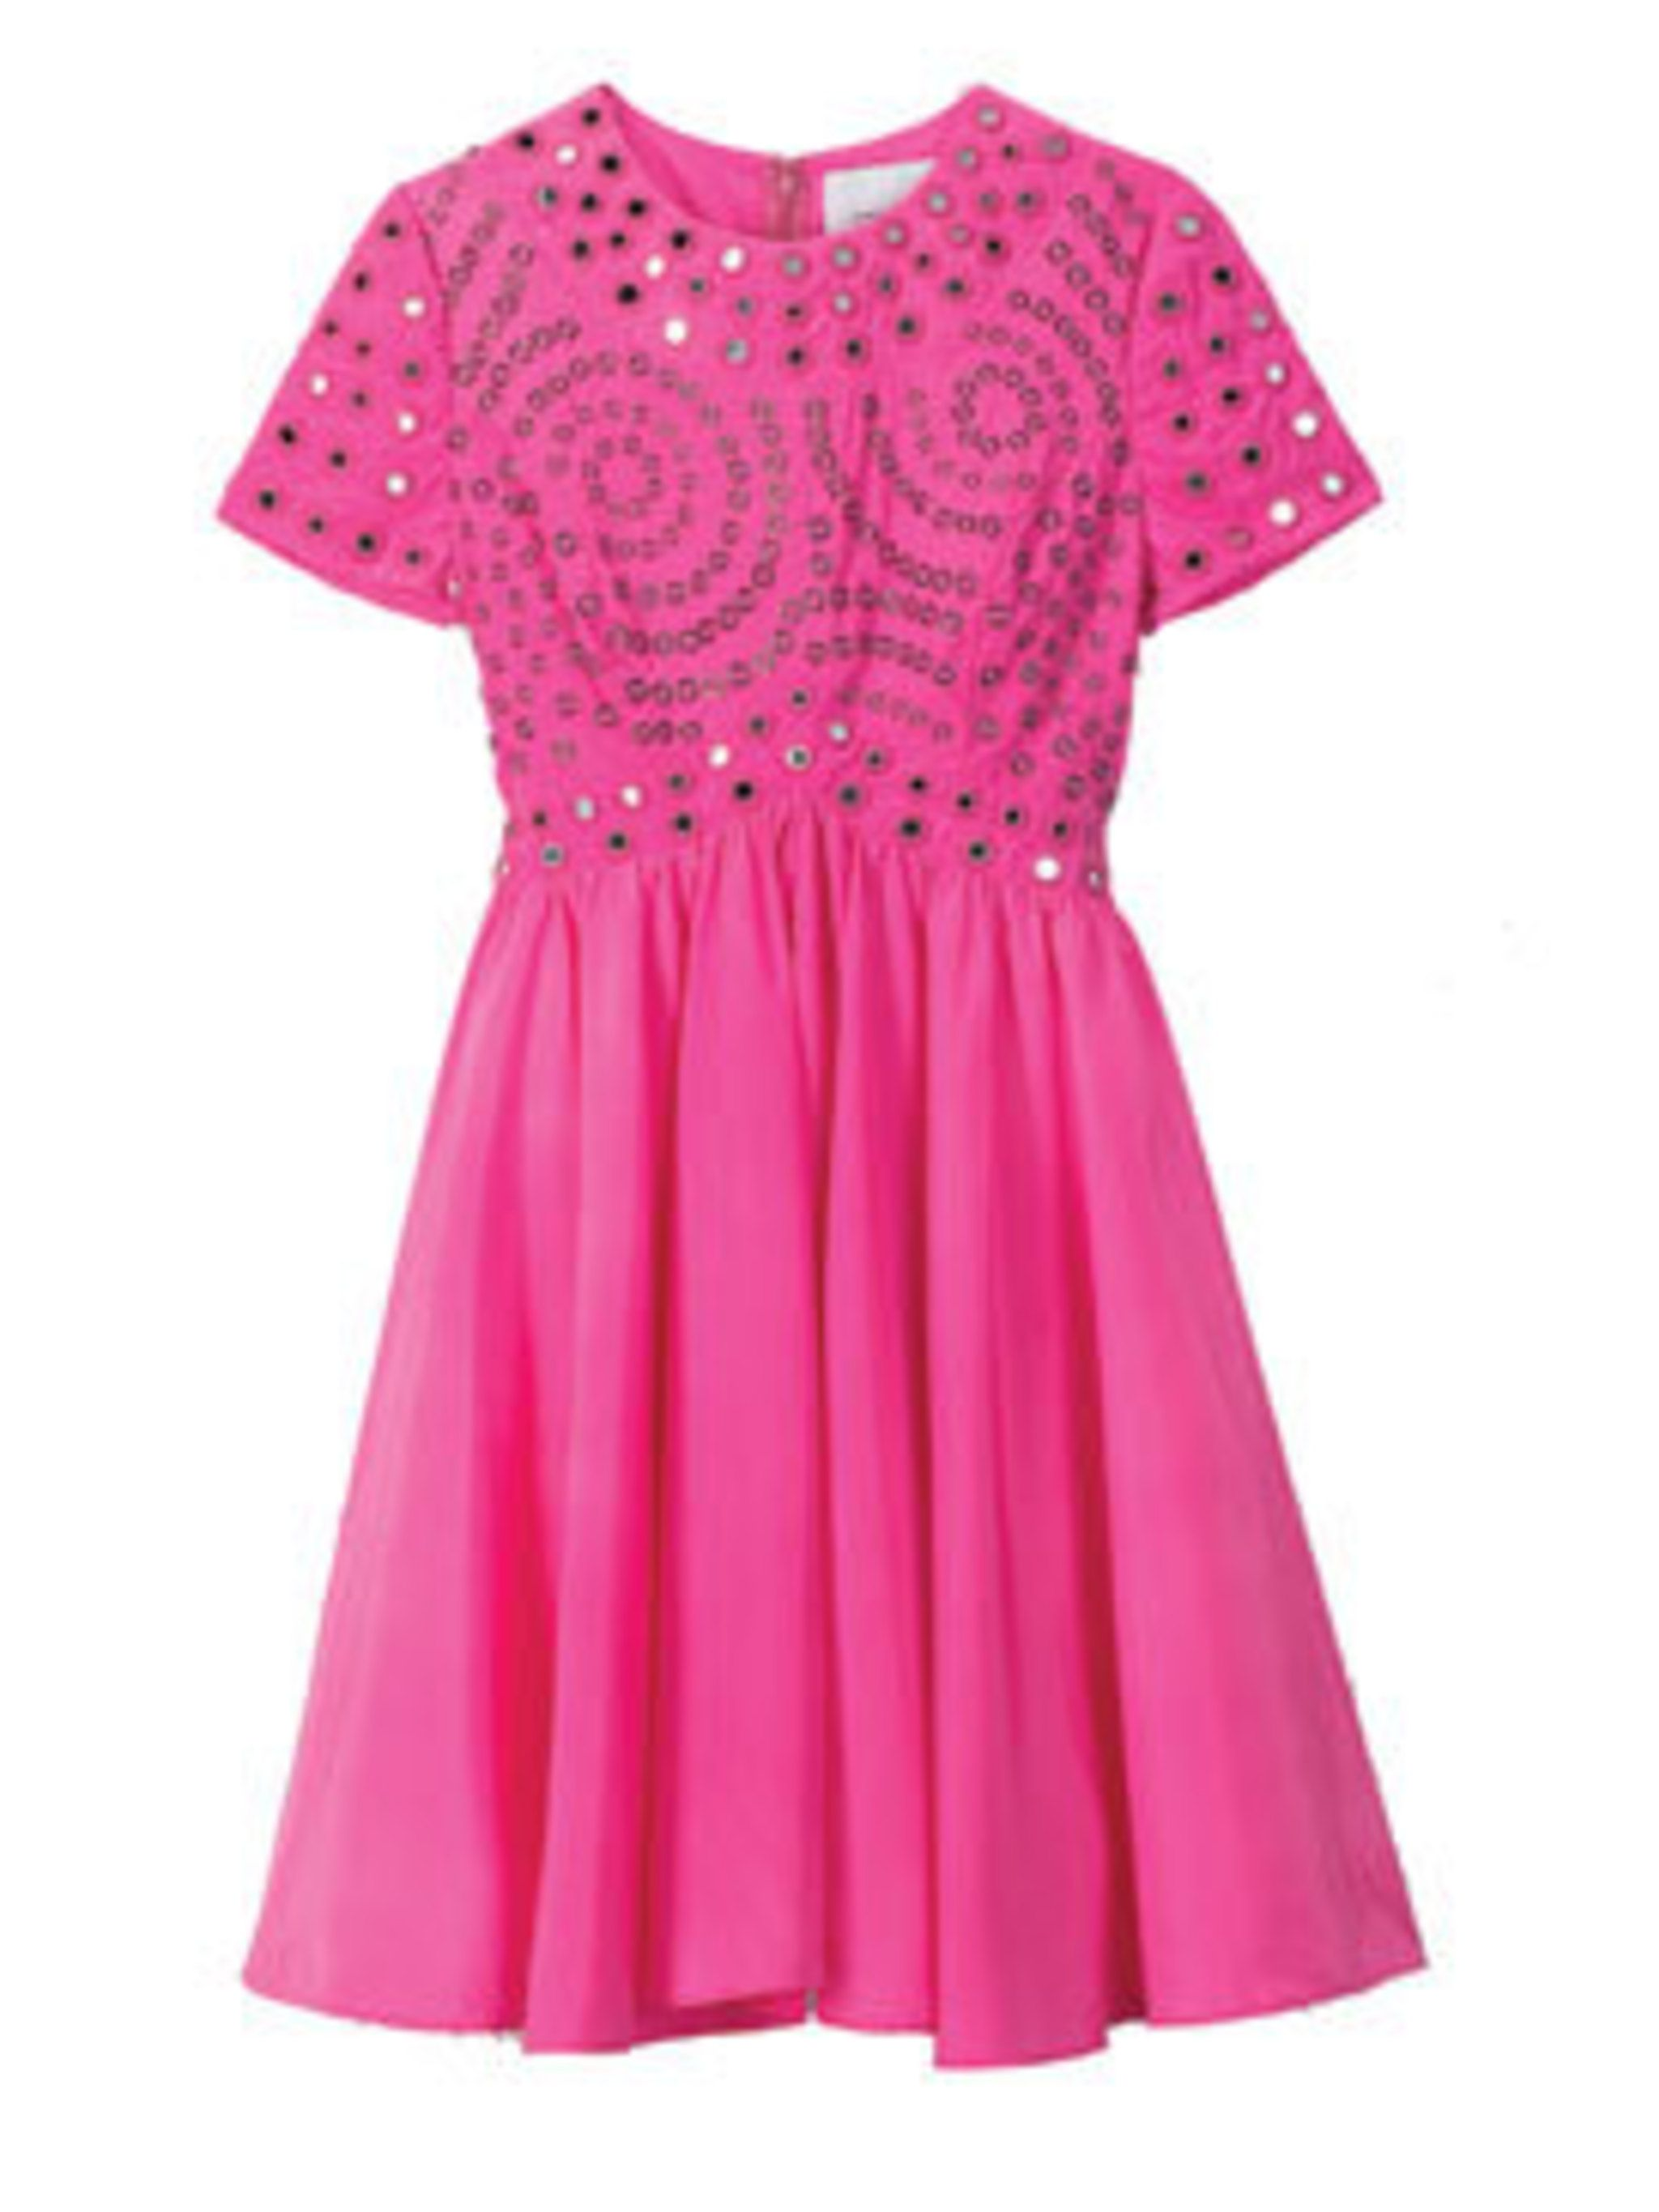 <p>Pink dress, £150, by Christopher Kane for Topshop (0845 121 4519)</p>